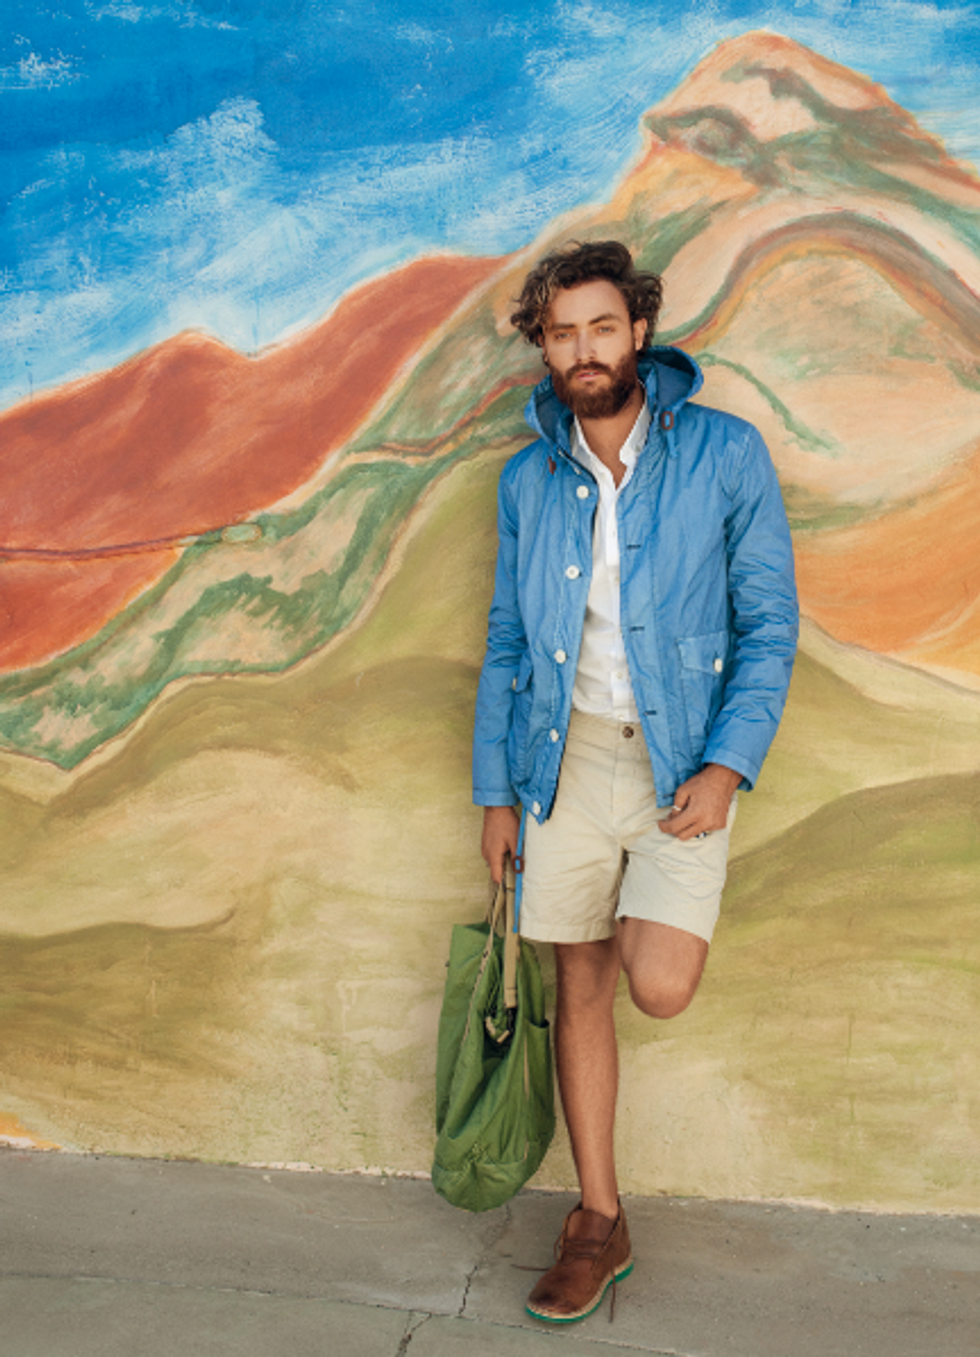 CLOSED's S/S '12 Mojave Desert Campaign Is All About the Color